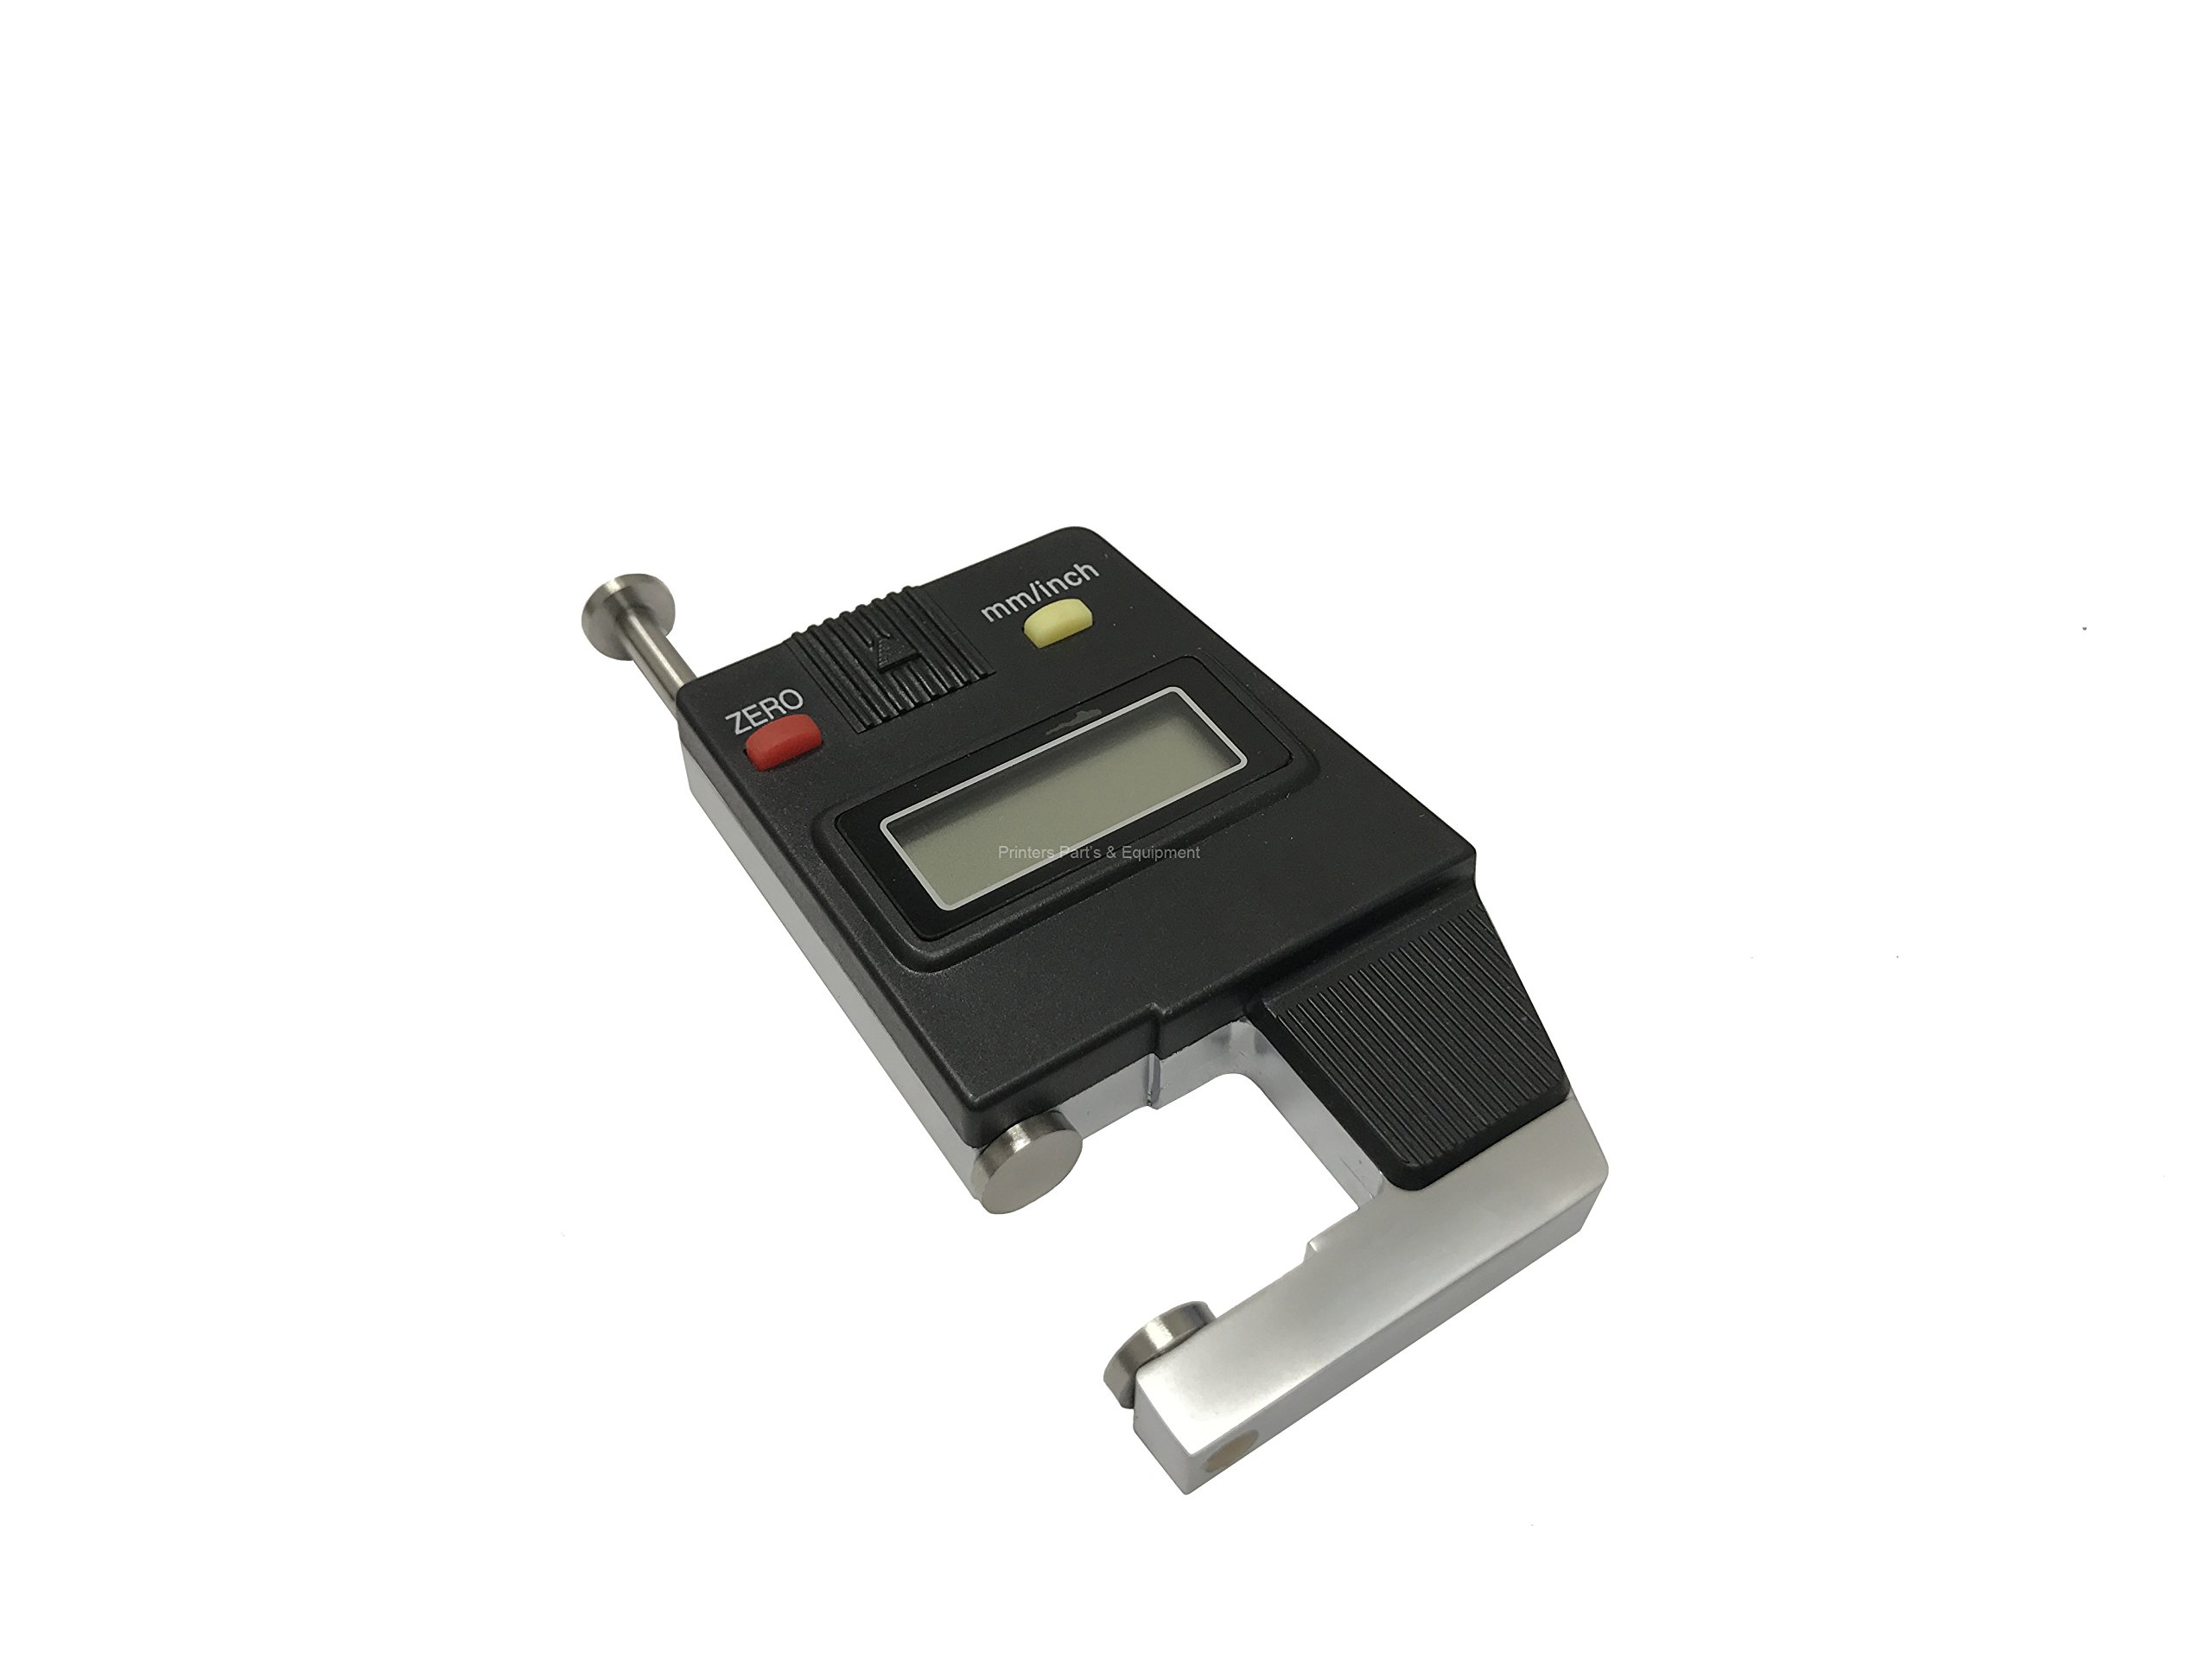 Digital Thickness Gauge For Paper Measurement 0-15mm Range